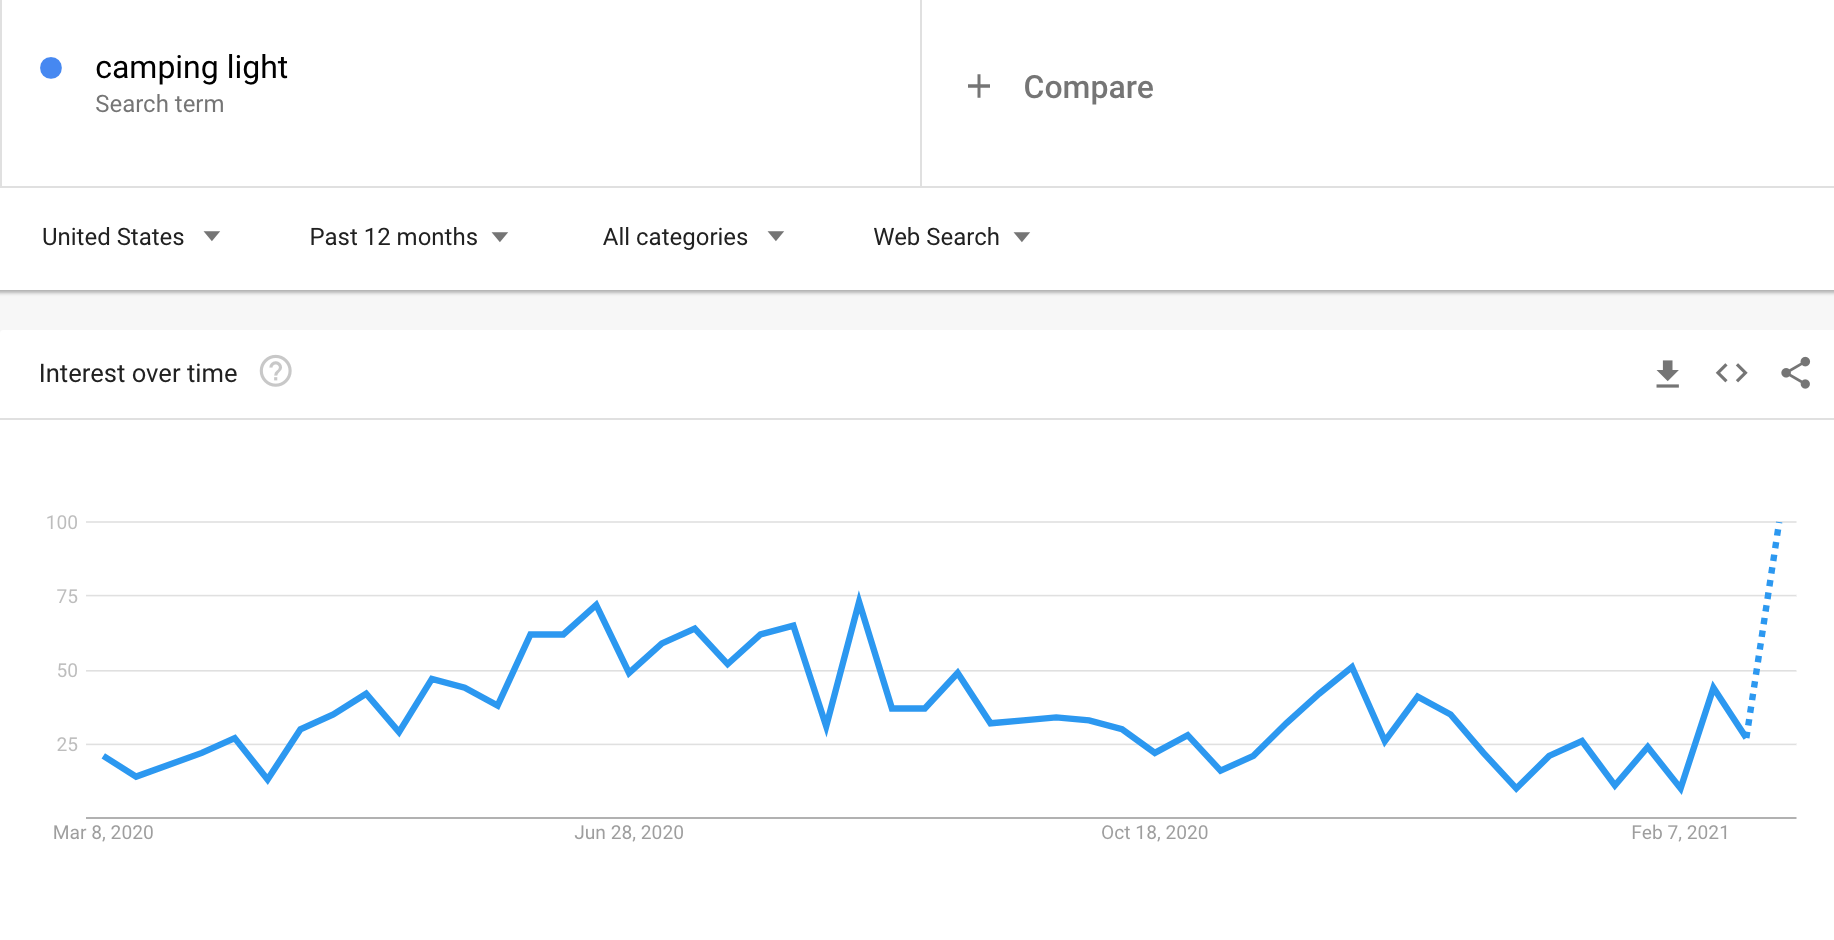 Google Trends graph showing the interest in camping lights